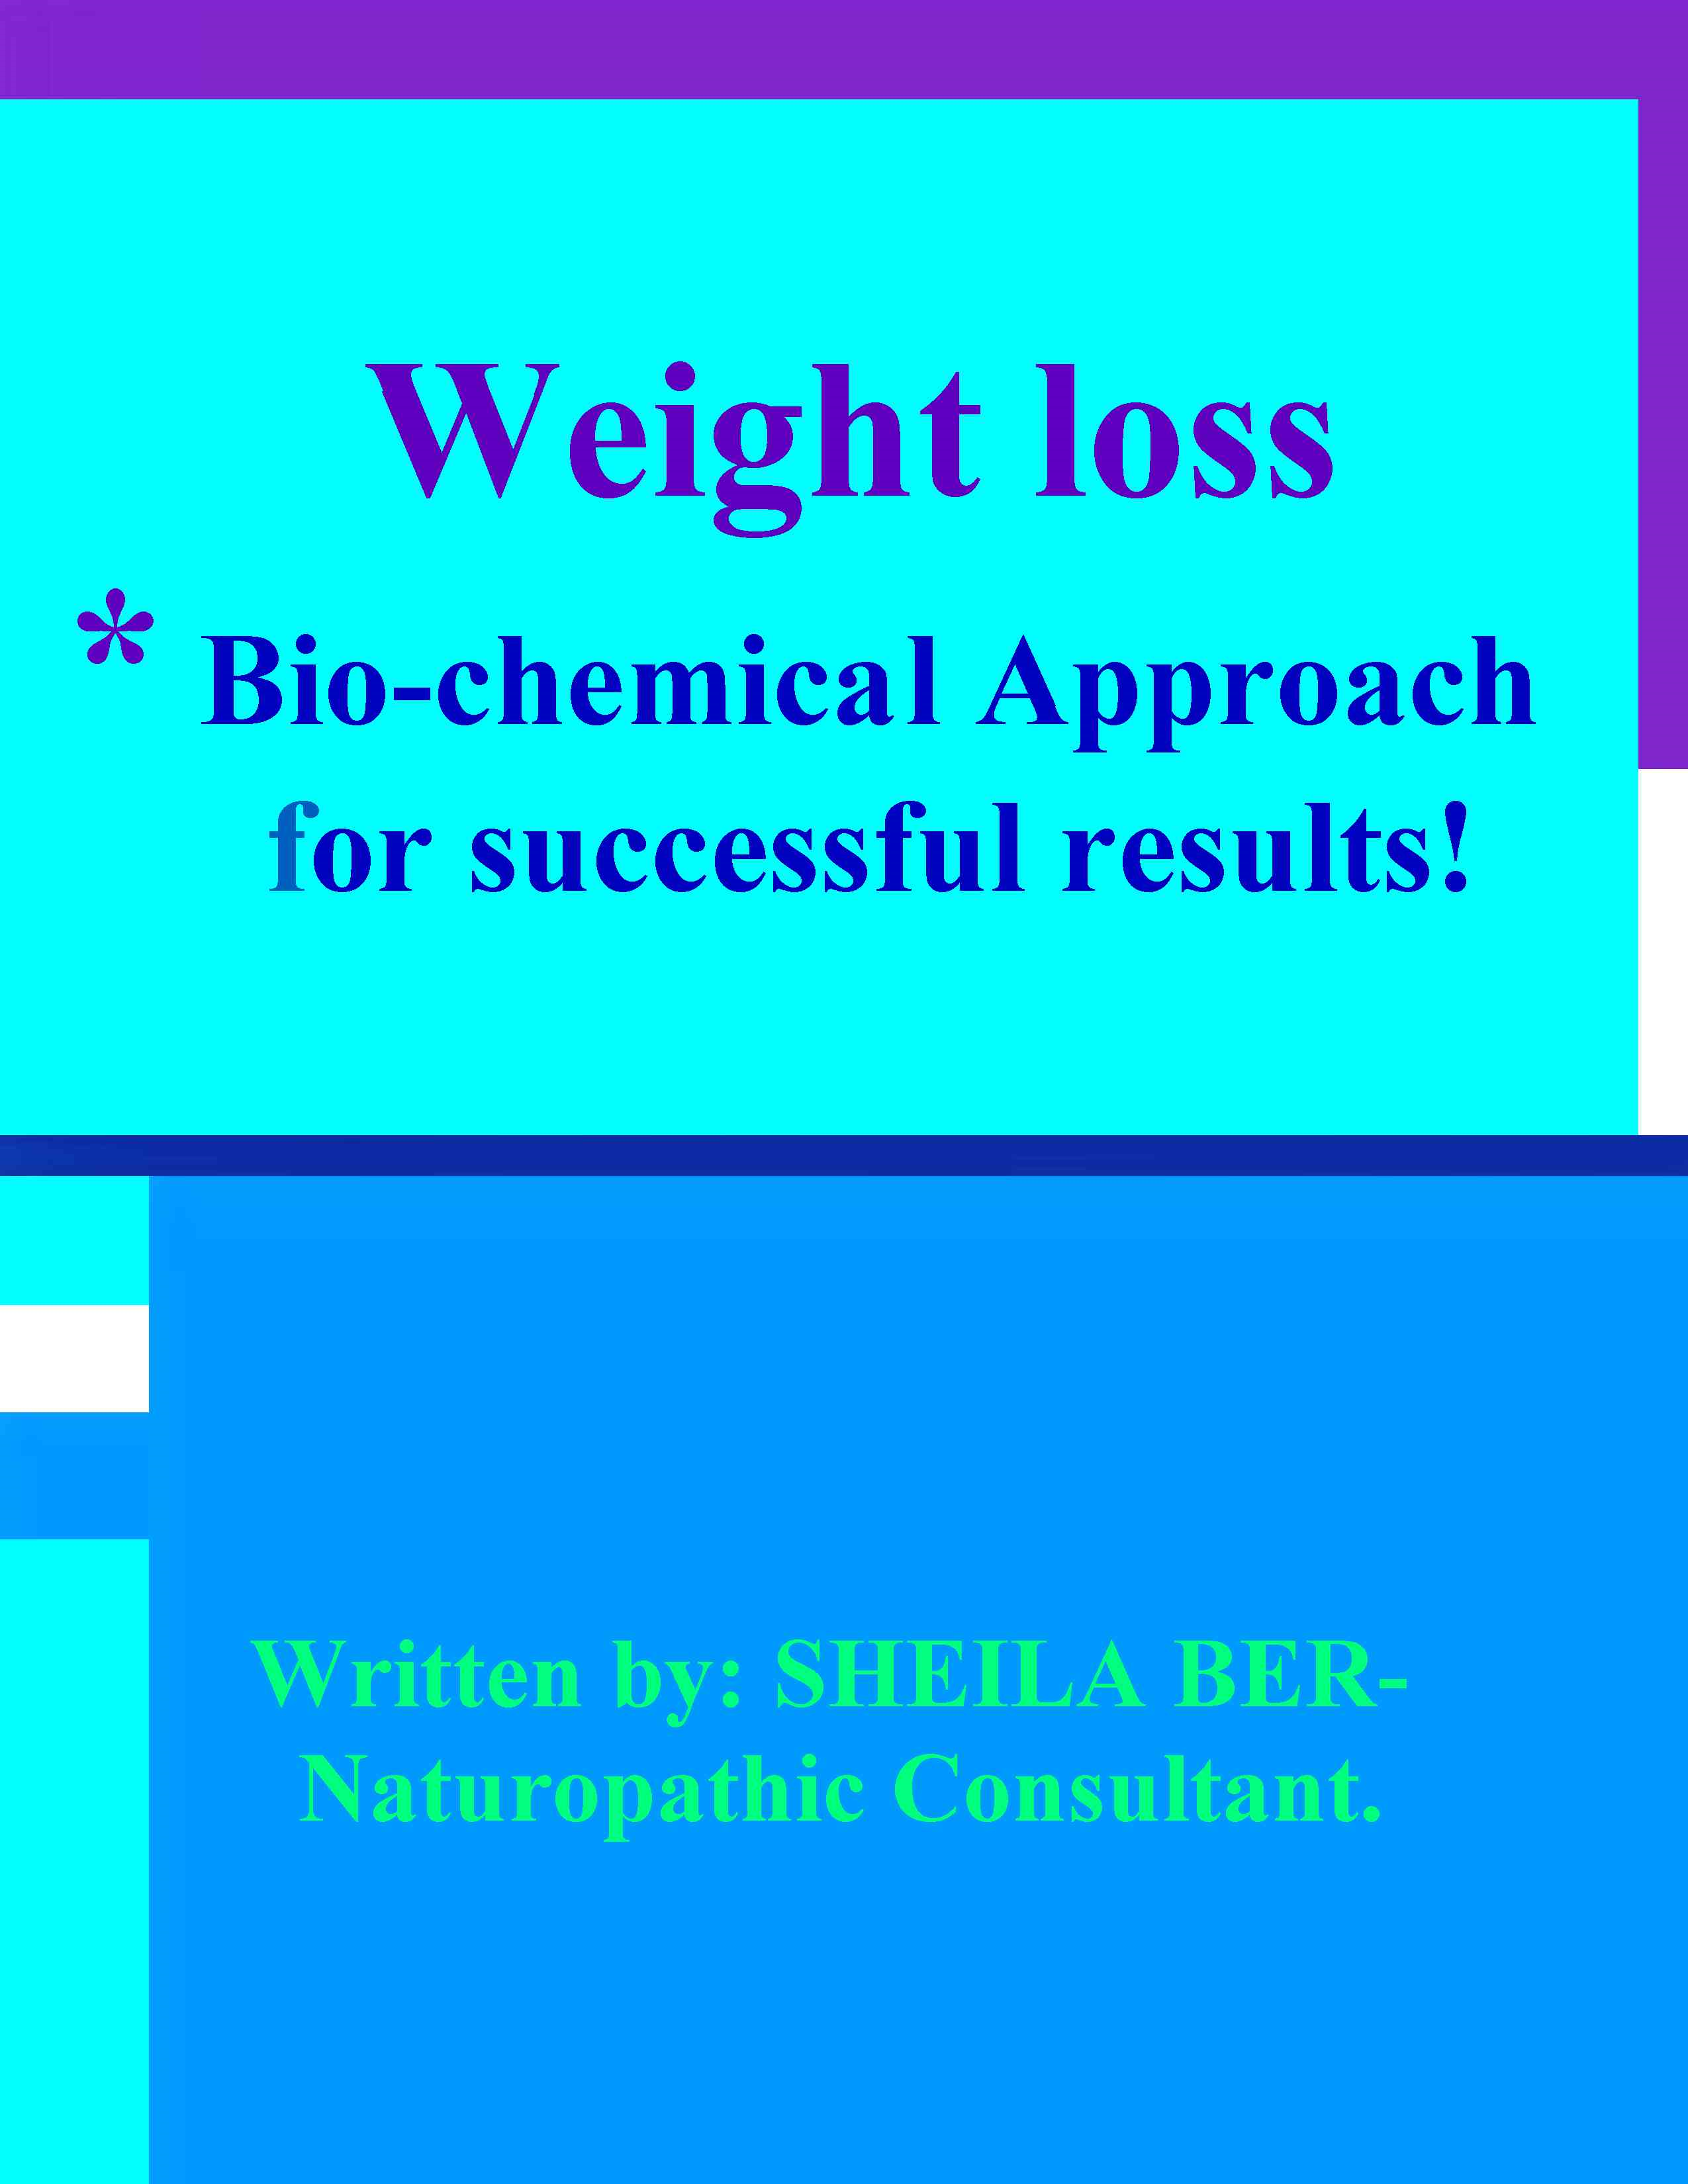 WEIGHT LOSS - *Bio-chemical Approach for Successful results!   Written by SHEILA BER - Naturopathic Consultant.